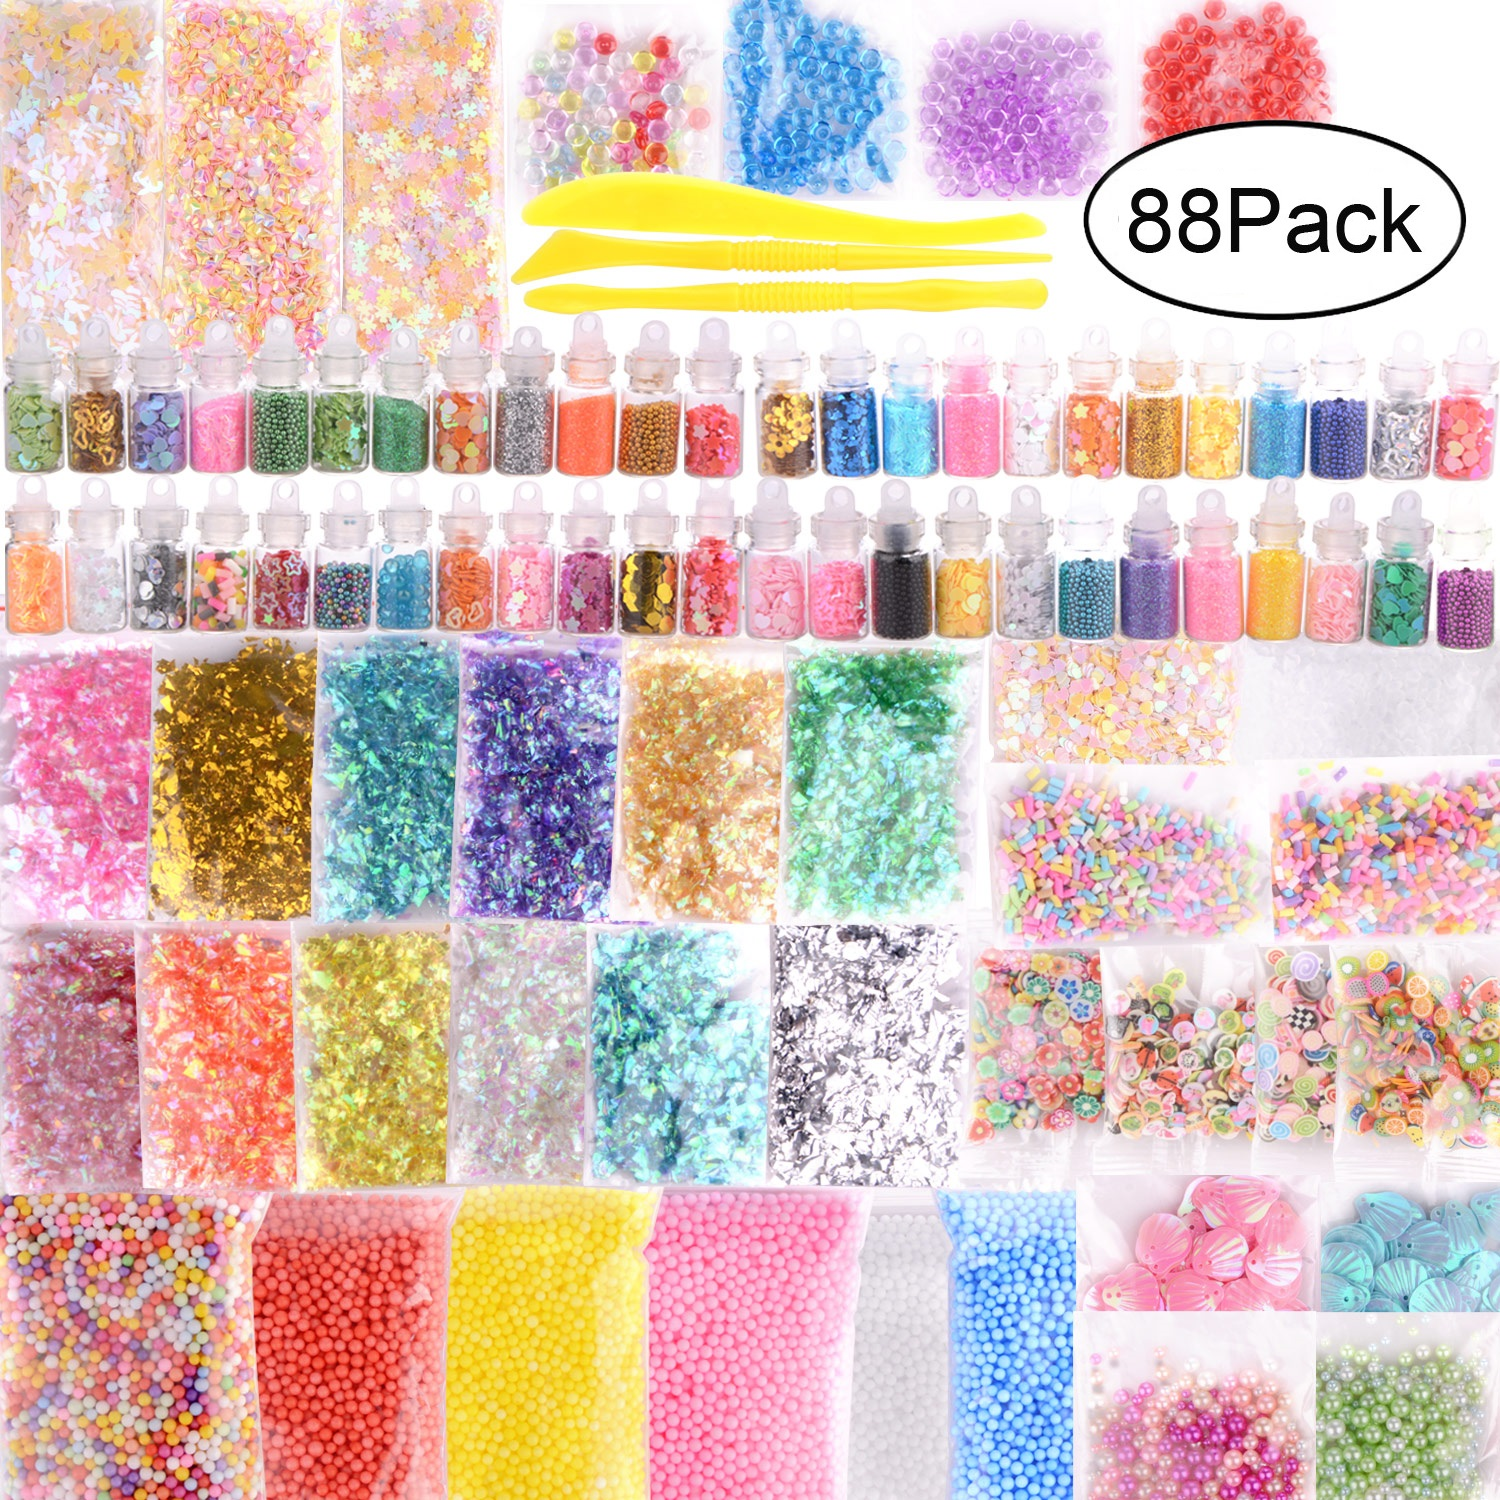 88pcs/set 3D Fluffy Foam Slime Foam Balls Kids Baby Toys DIY Craft Slime Supplies Kit Floam Beads Glitter Slices Rainbow Pearl